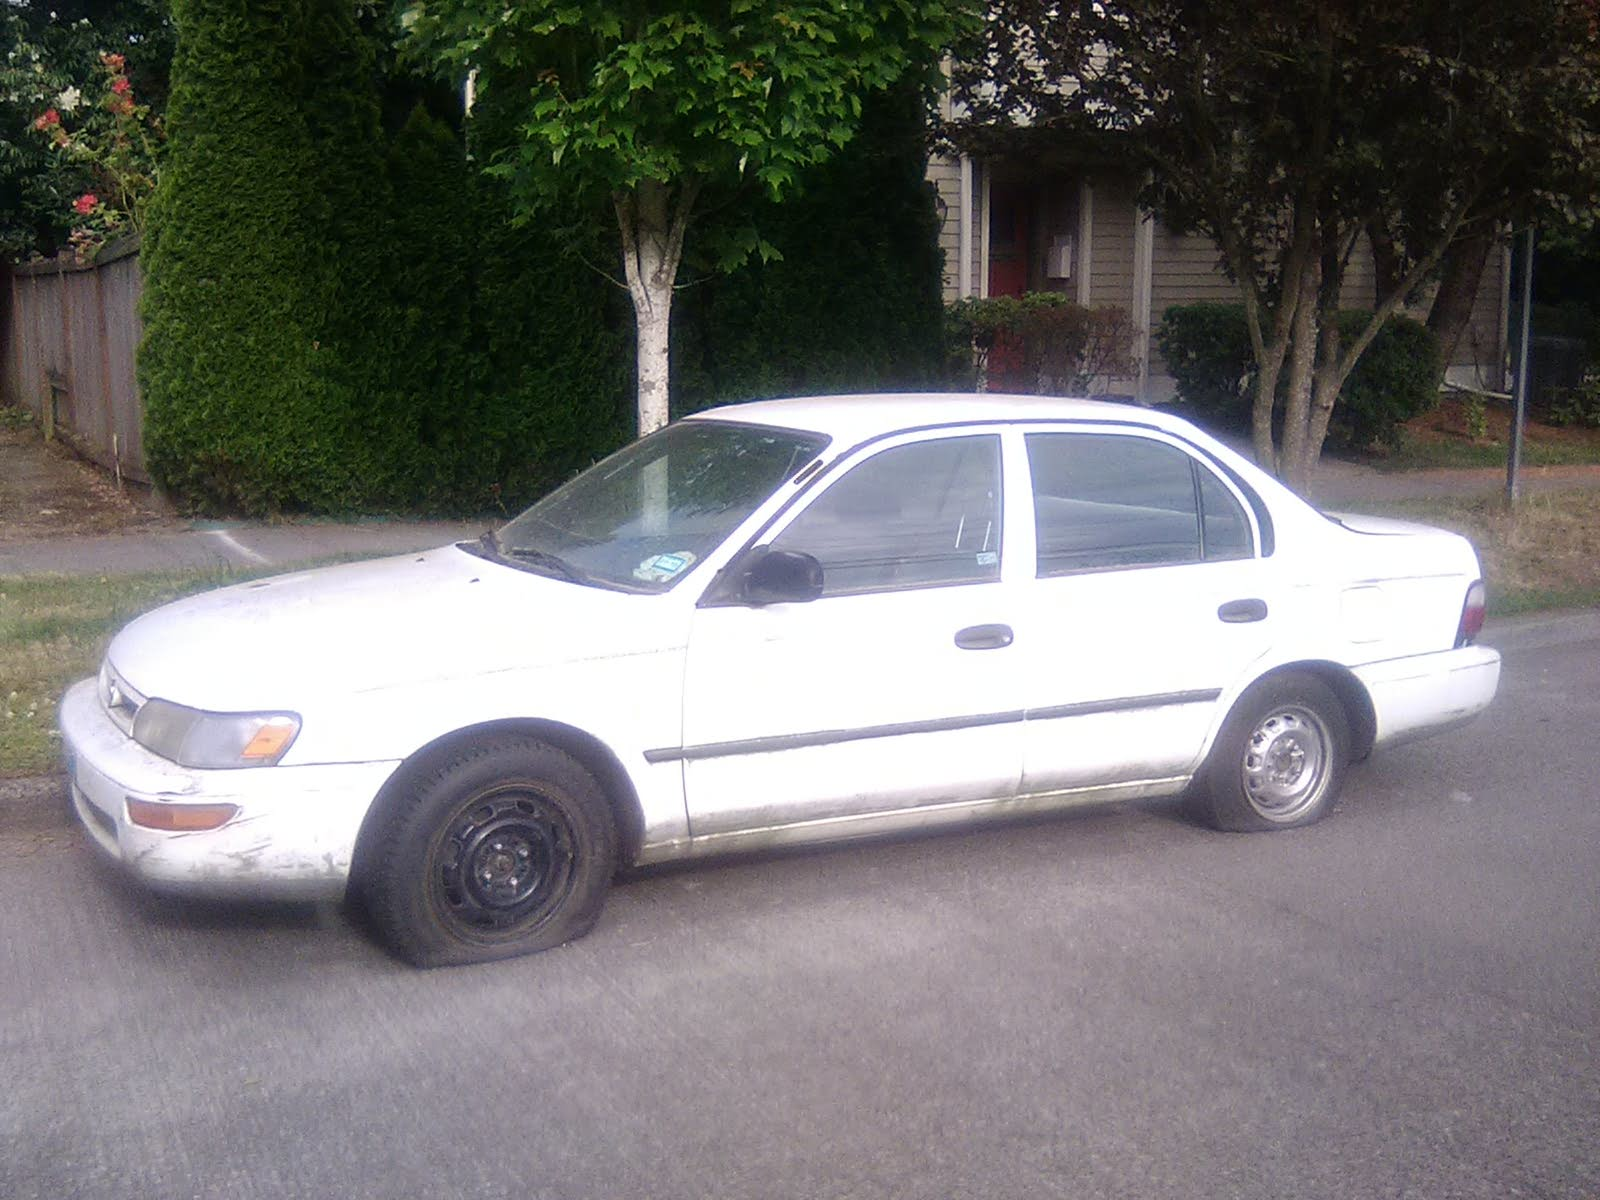 Toyota Corolla Questions - Will a 4AFE engine from my 1991 Corolla